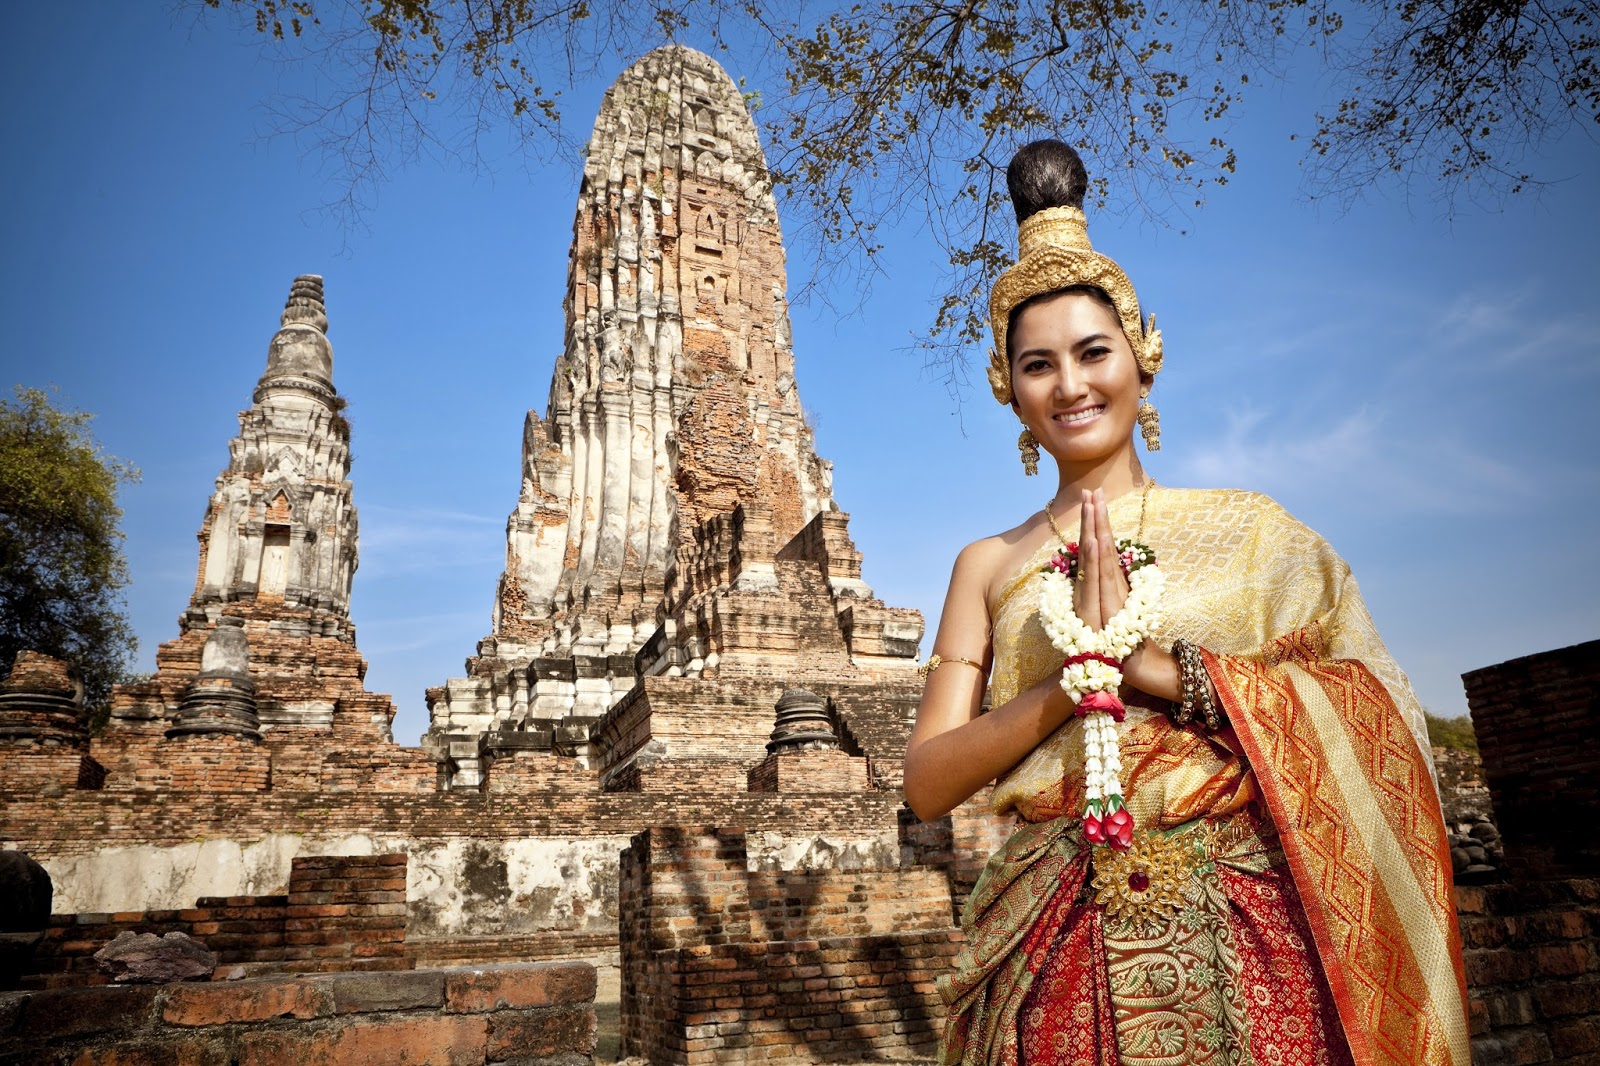 An analysis of the culture and society in thailand